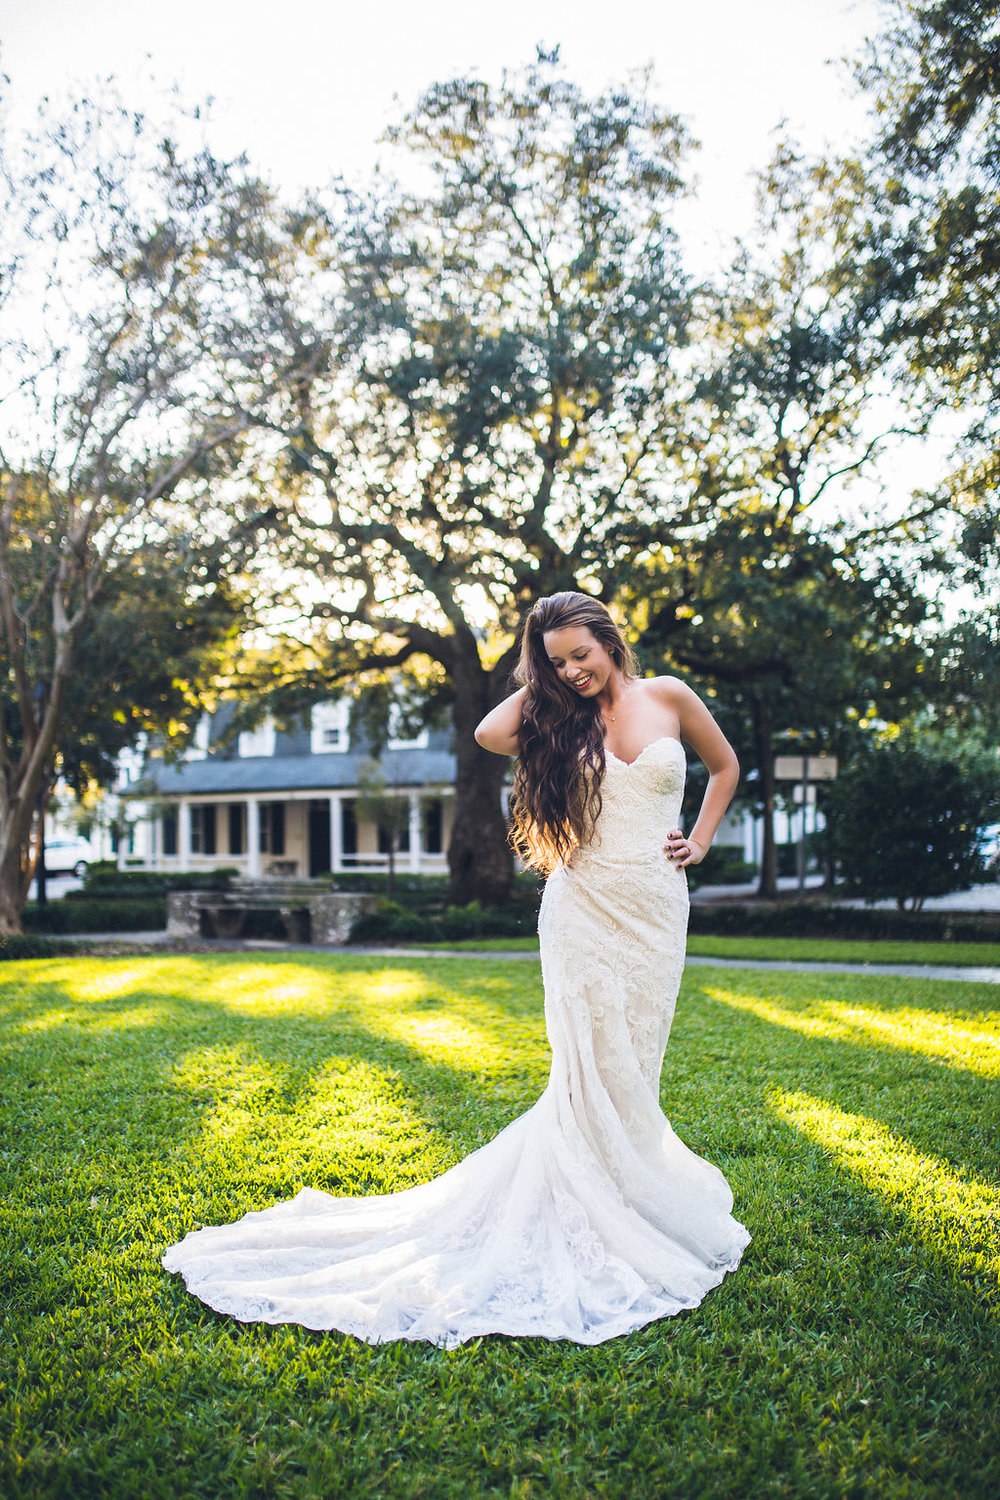 alexis-sweet-photography-ivory-and-beau-bridal-boutique-mirelle--maggie-sottero-rebecca-ingram-lace-mermaid-savannah-wedding-savannah-square-wedding-flower-crown-boho-bride-savannah-wedding-planner-savannah-bridal-boutique-savannah-florist-3.jpg